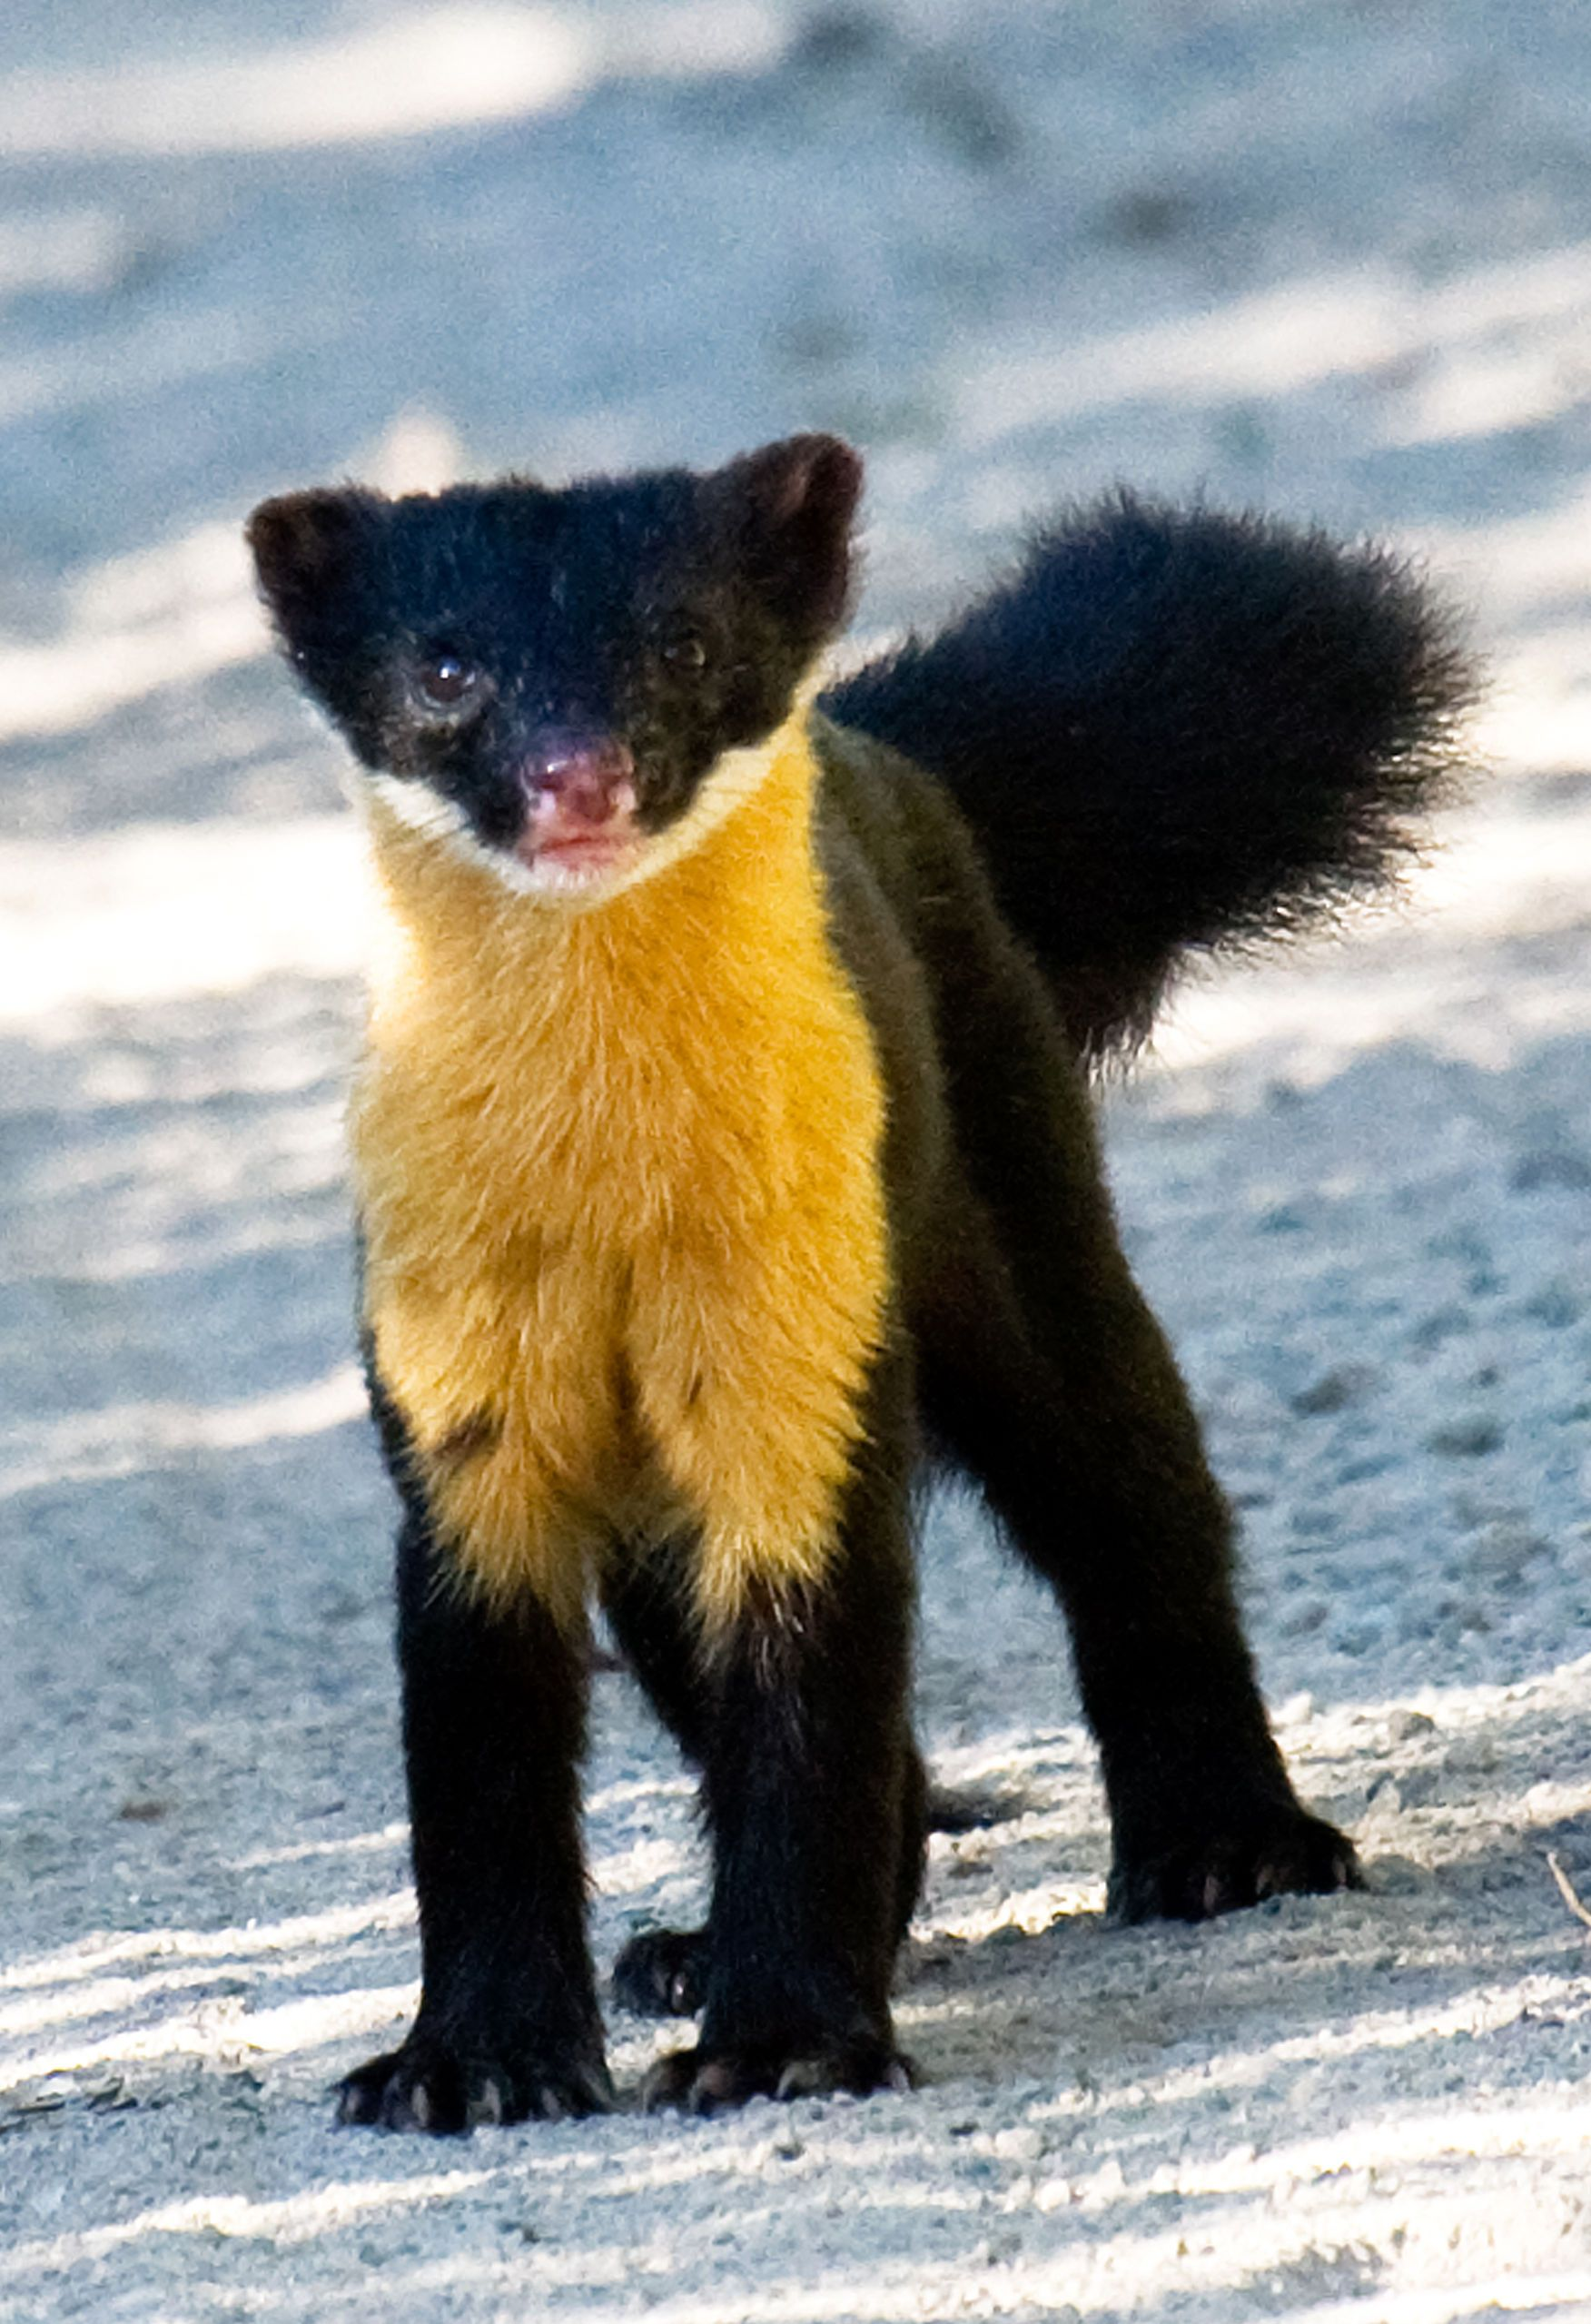 Nilgiri marten - Wikipedia | Animals, Weird animals, Interesting animals